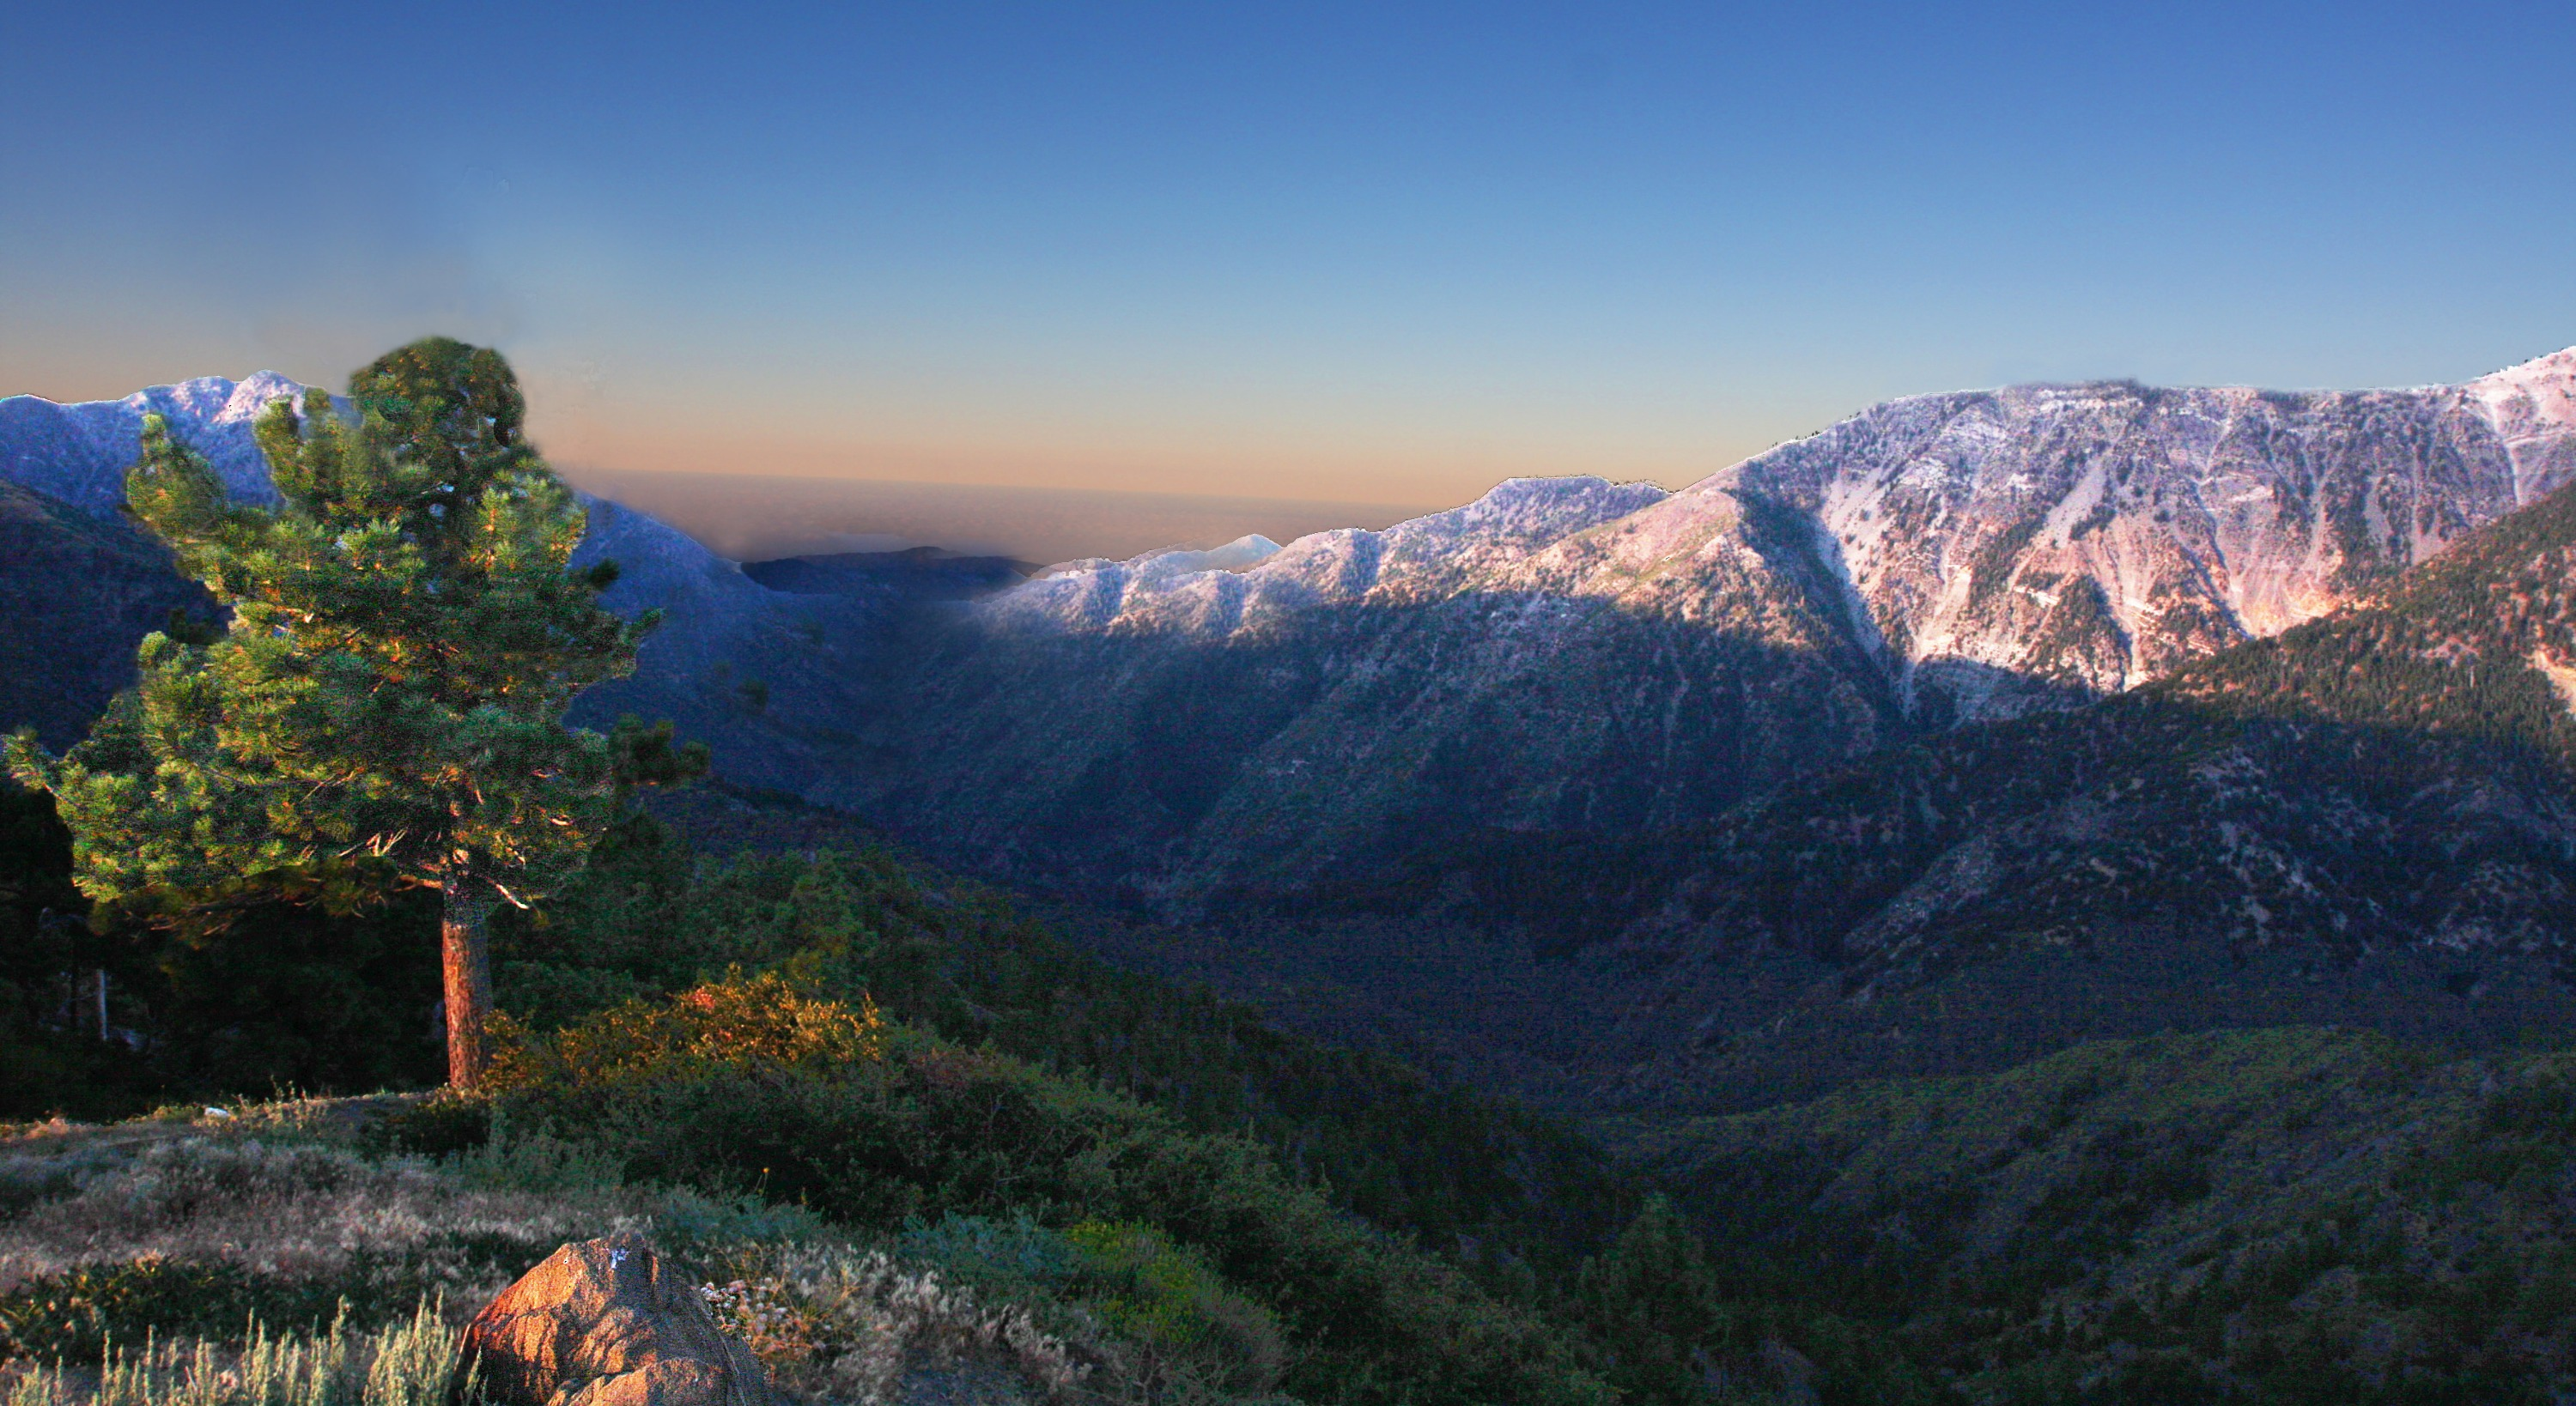 San_Gabriel_Mountain_Wilderness_edited.j